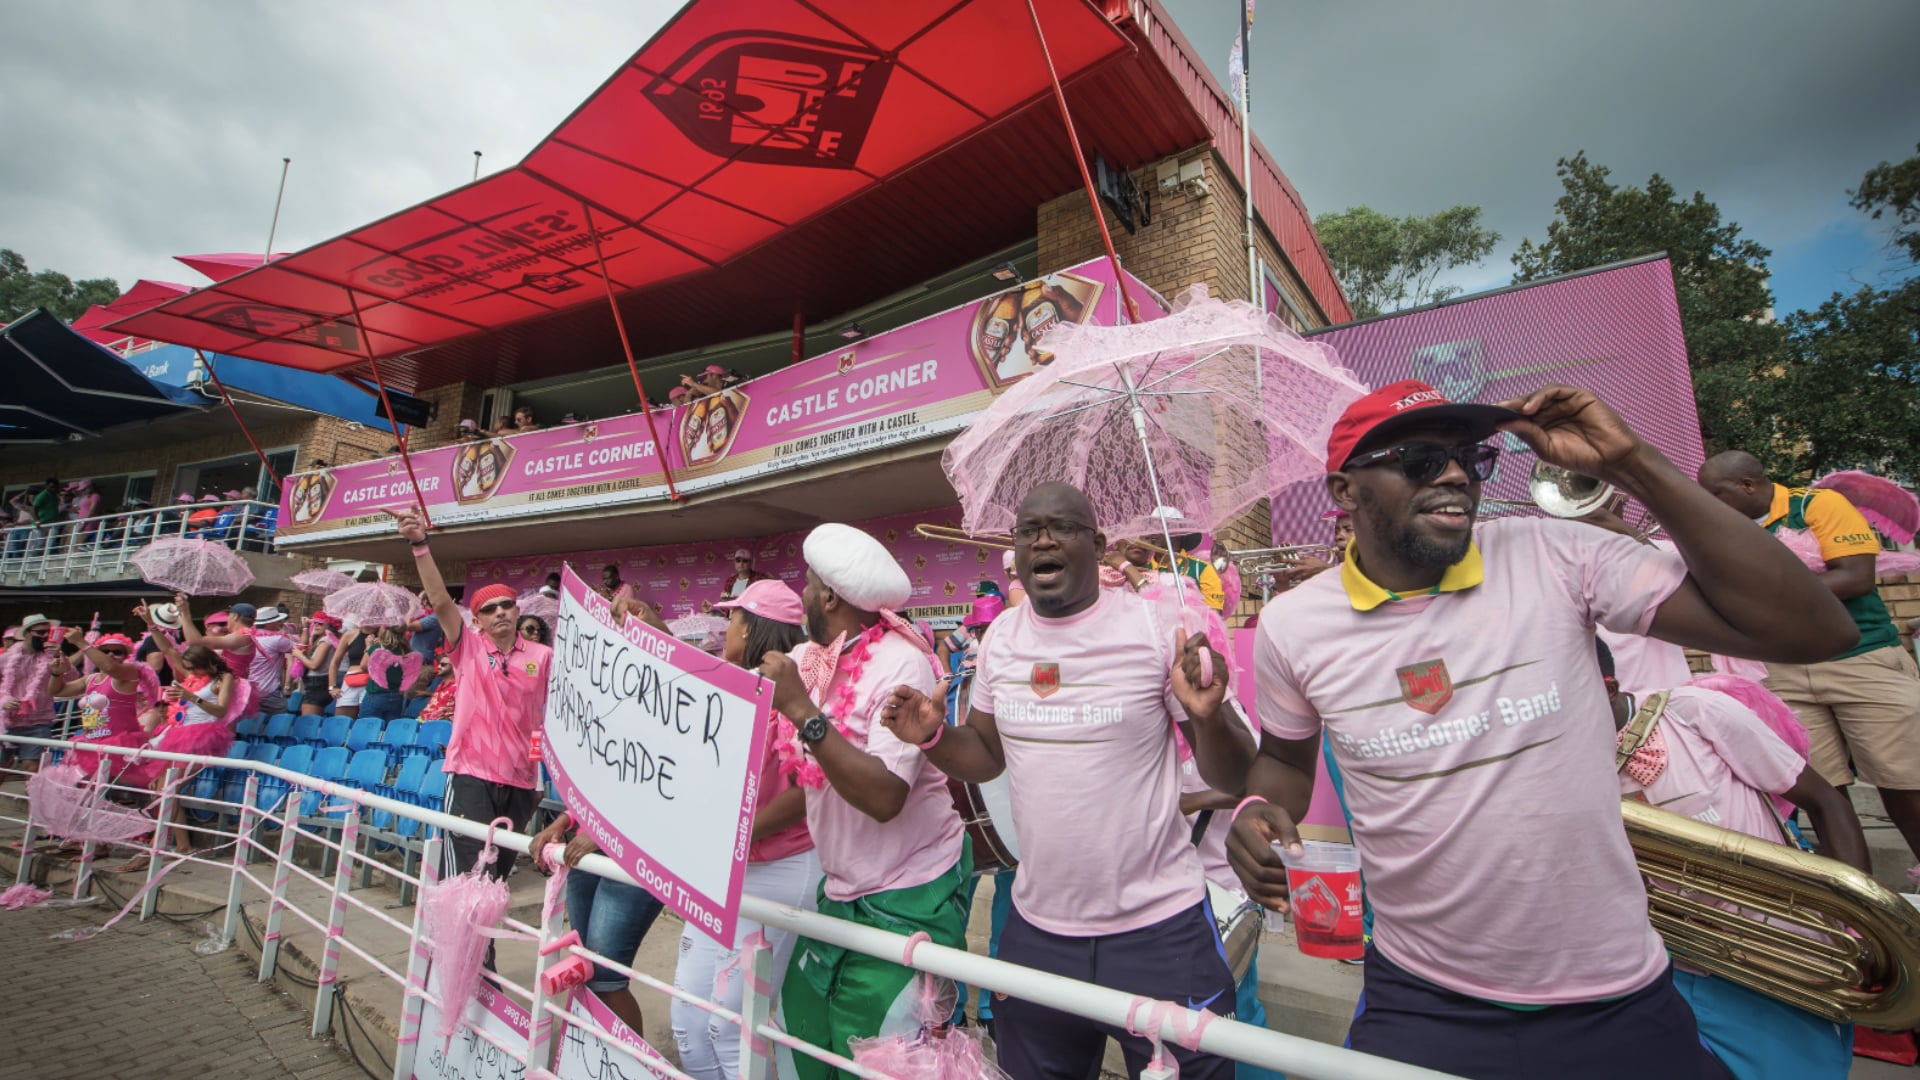 PROTEAS PITCH UP IN PINK SCRIPT 2